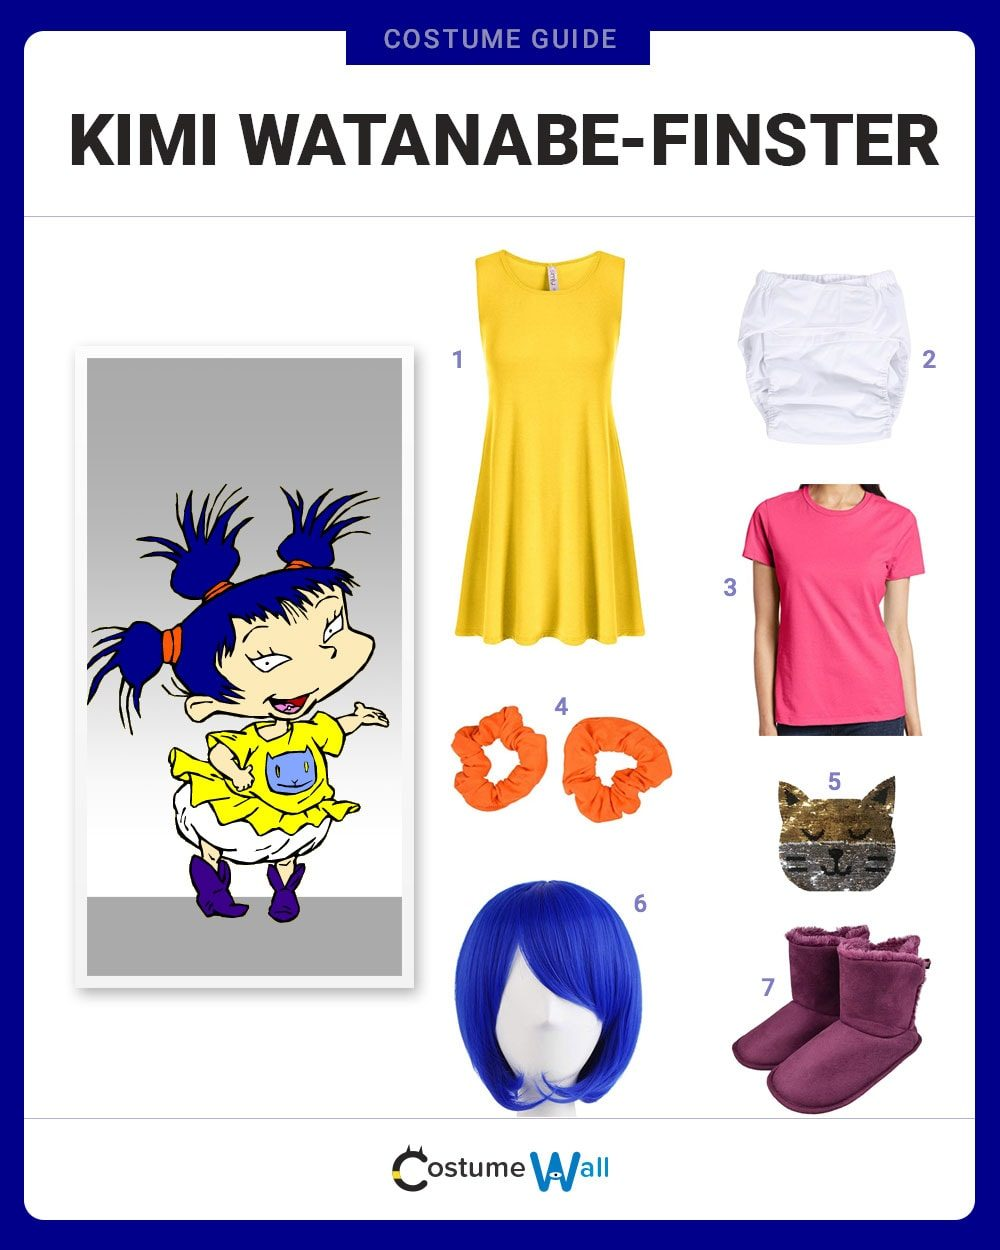 Kimi Watanabe-Finster Costume Guide